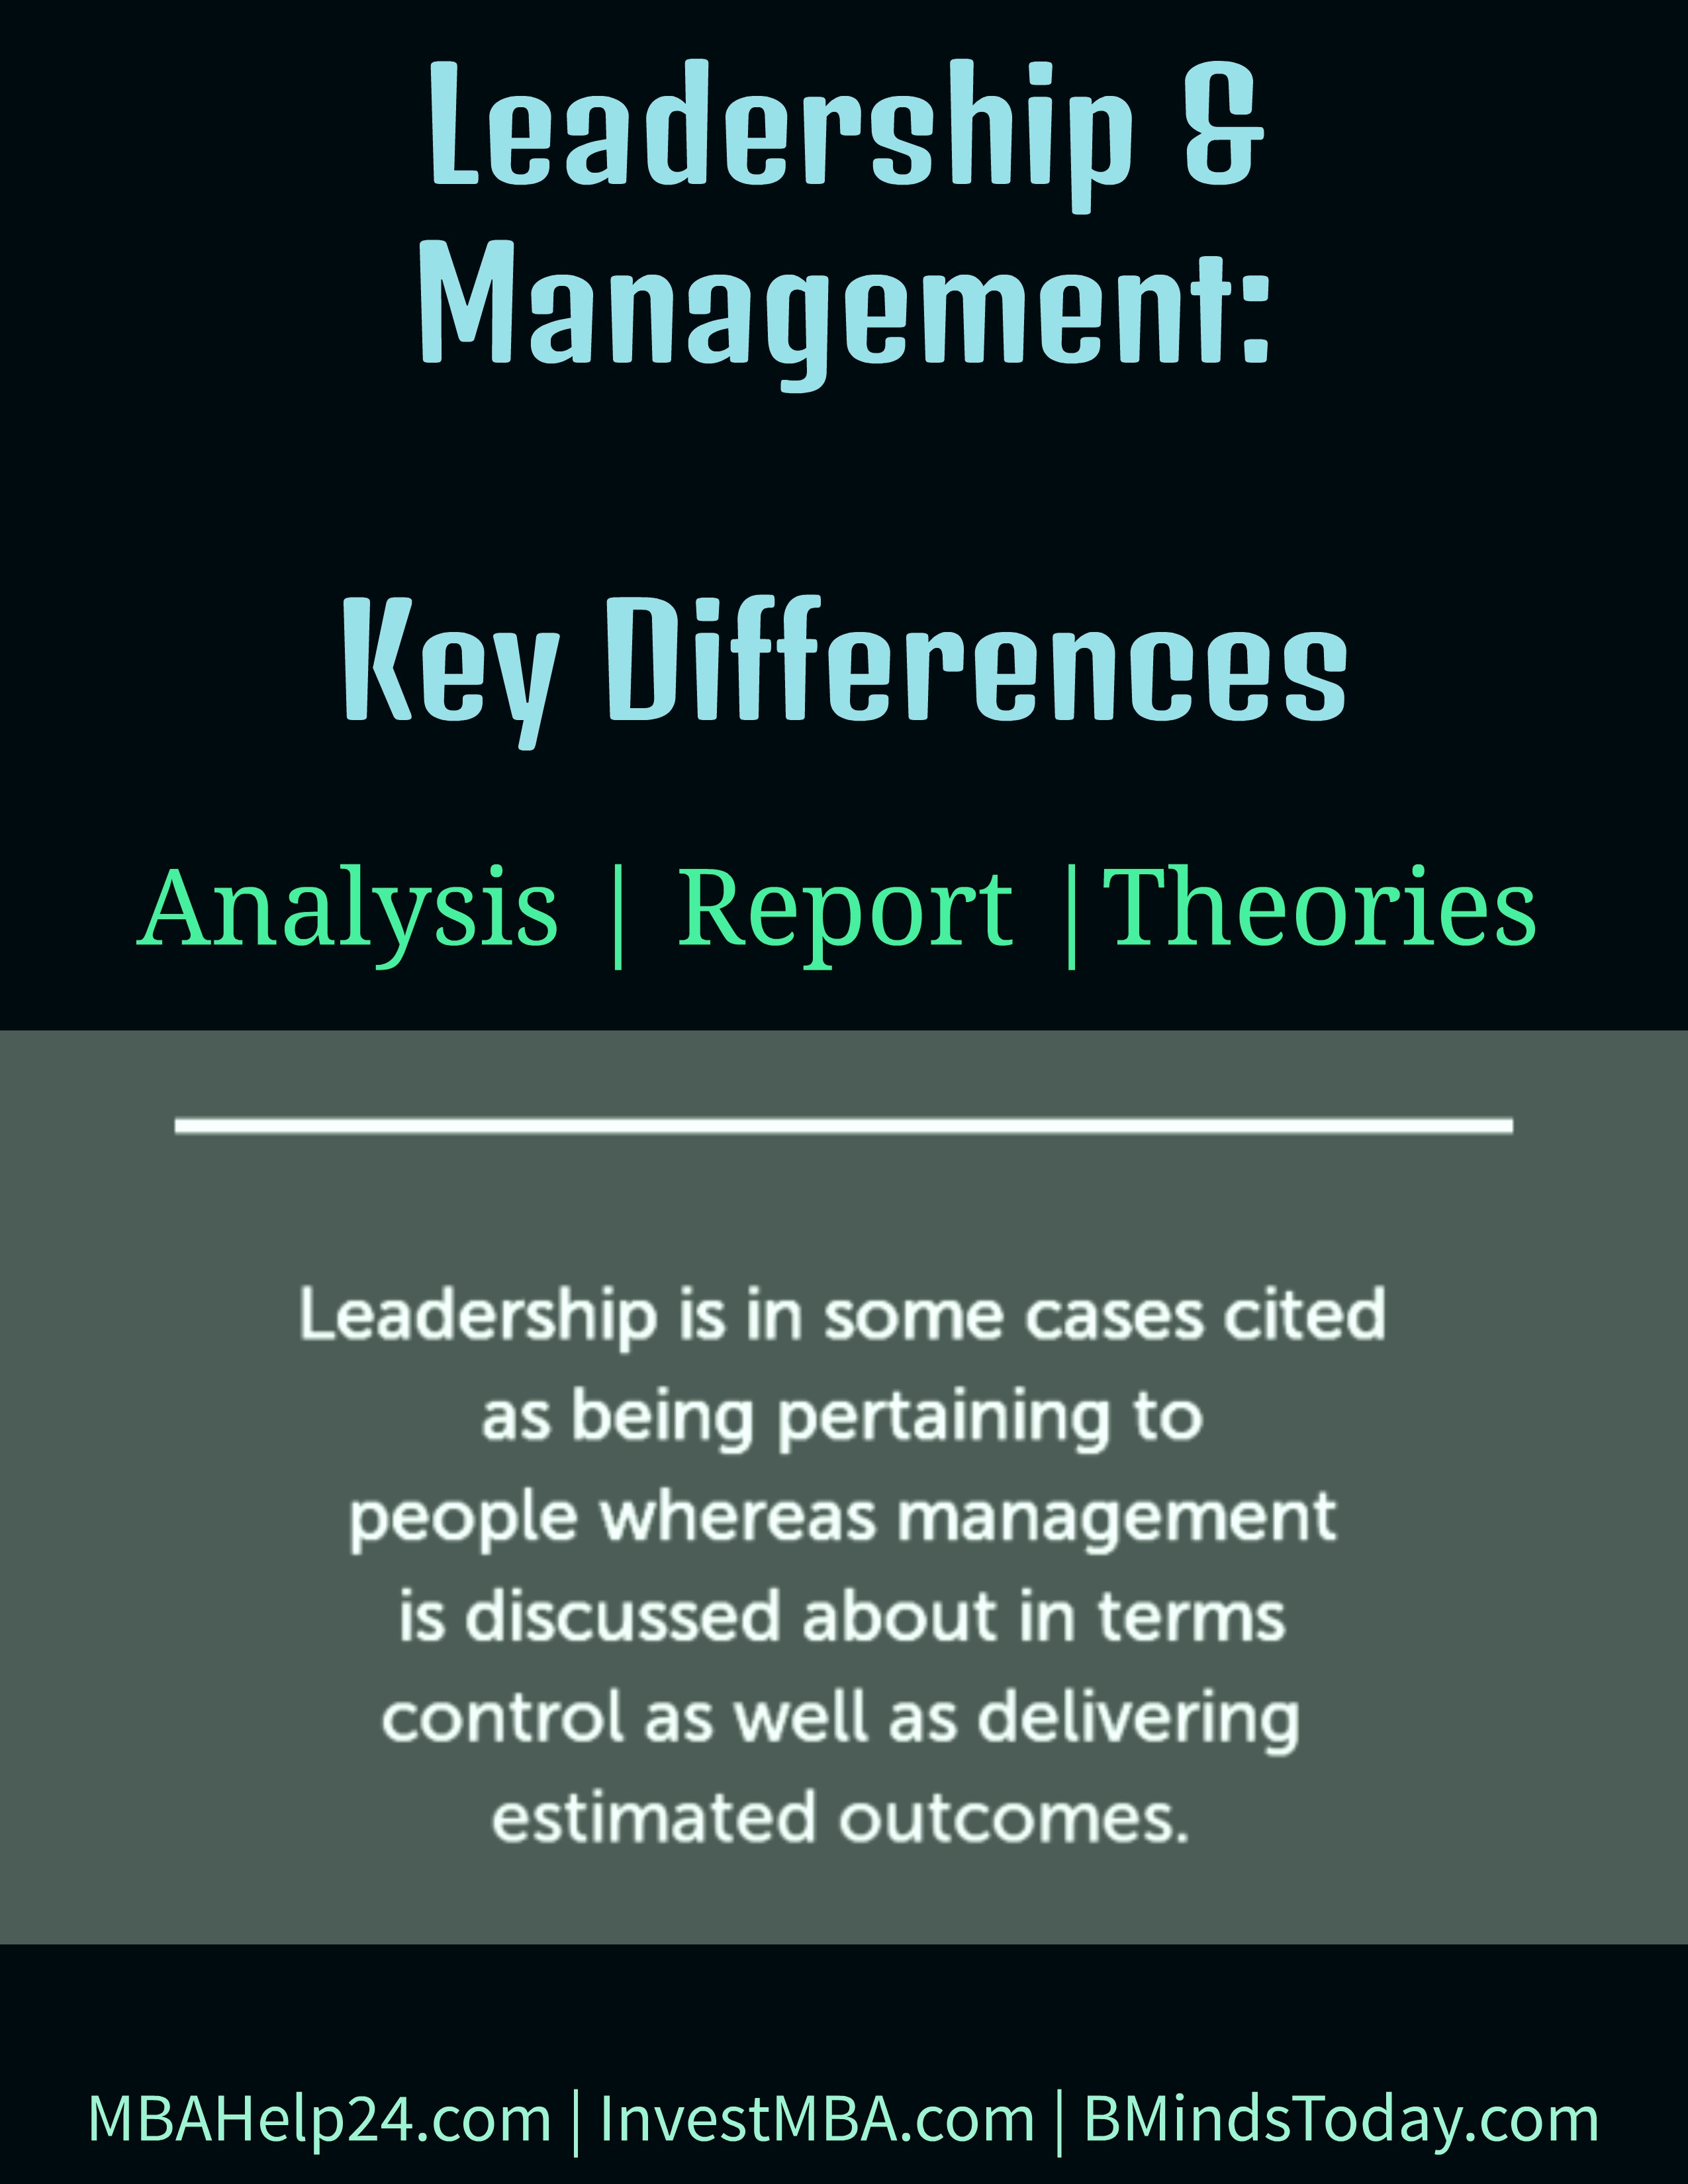 Leadership & Management | Key Differences leadership Leadership & Management: Key Differences Leadership and Management Key Differences